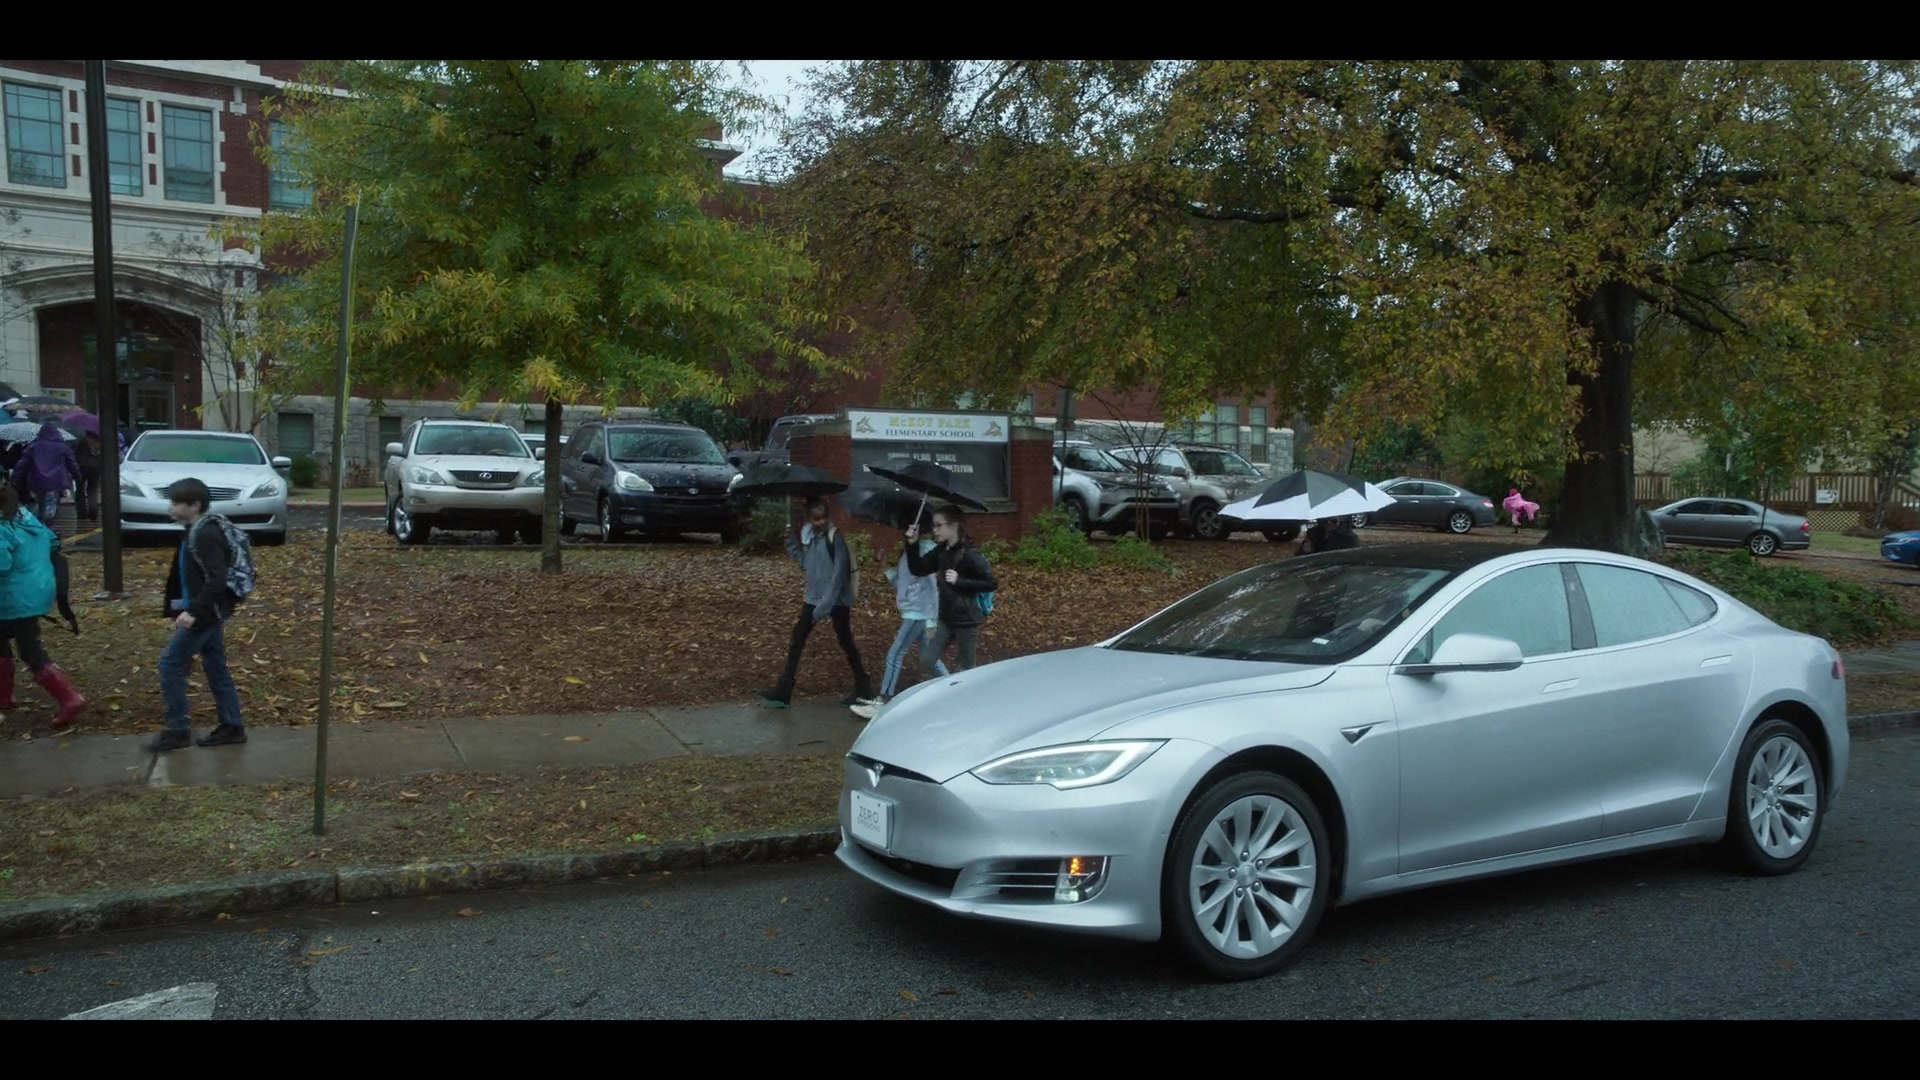 Tesla-Model-S-Car-Used-by-Jason-Ritter-a